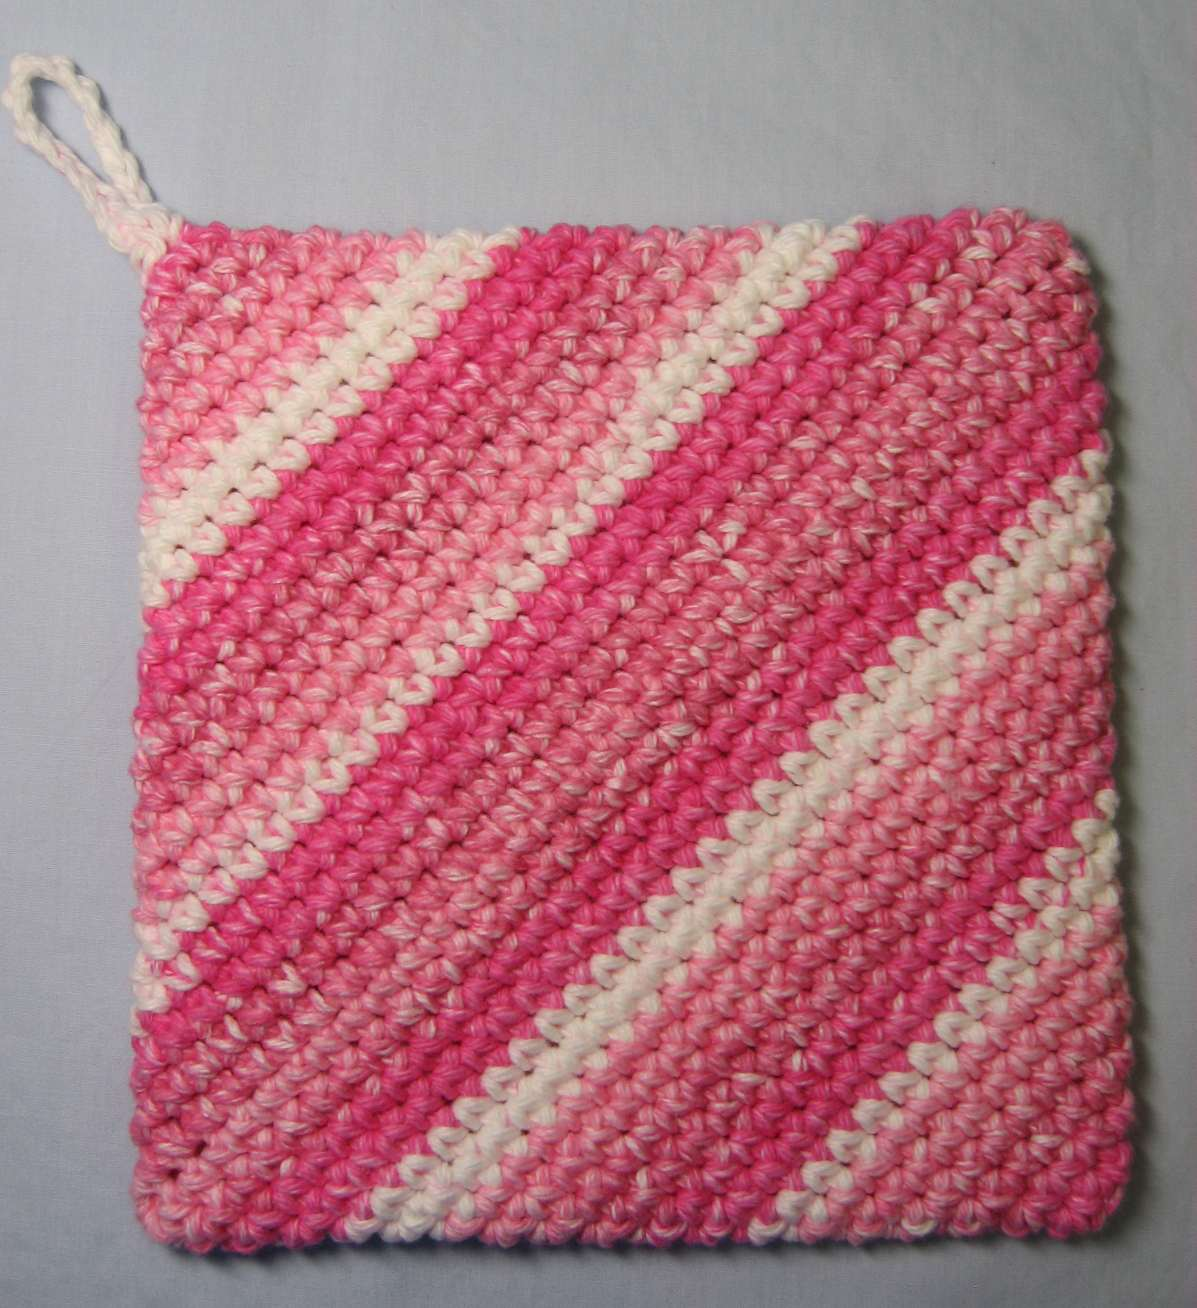 Knit Hot Pad Pattern : Hooked on Needles: Crocheted Hot Pad/Potholder - Its double thick!